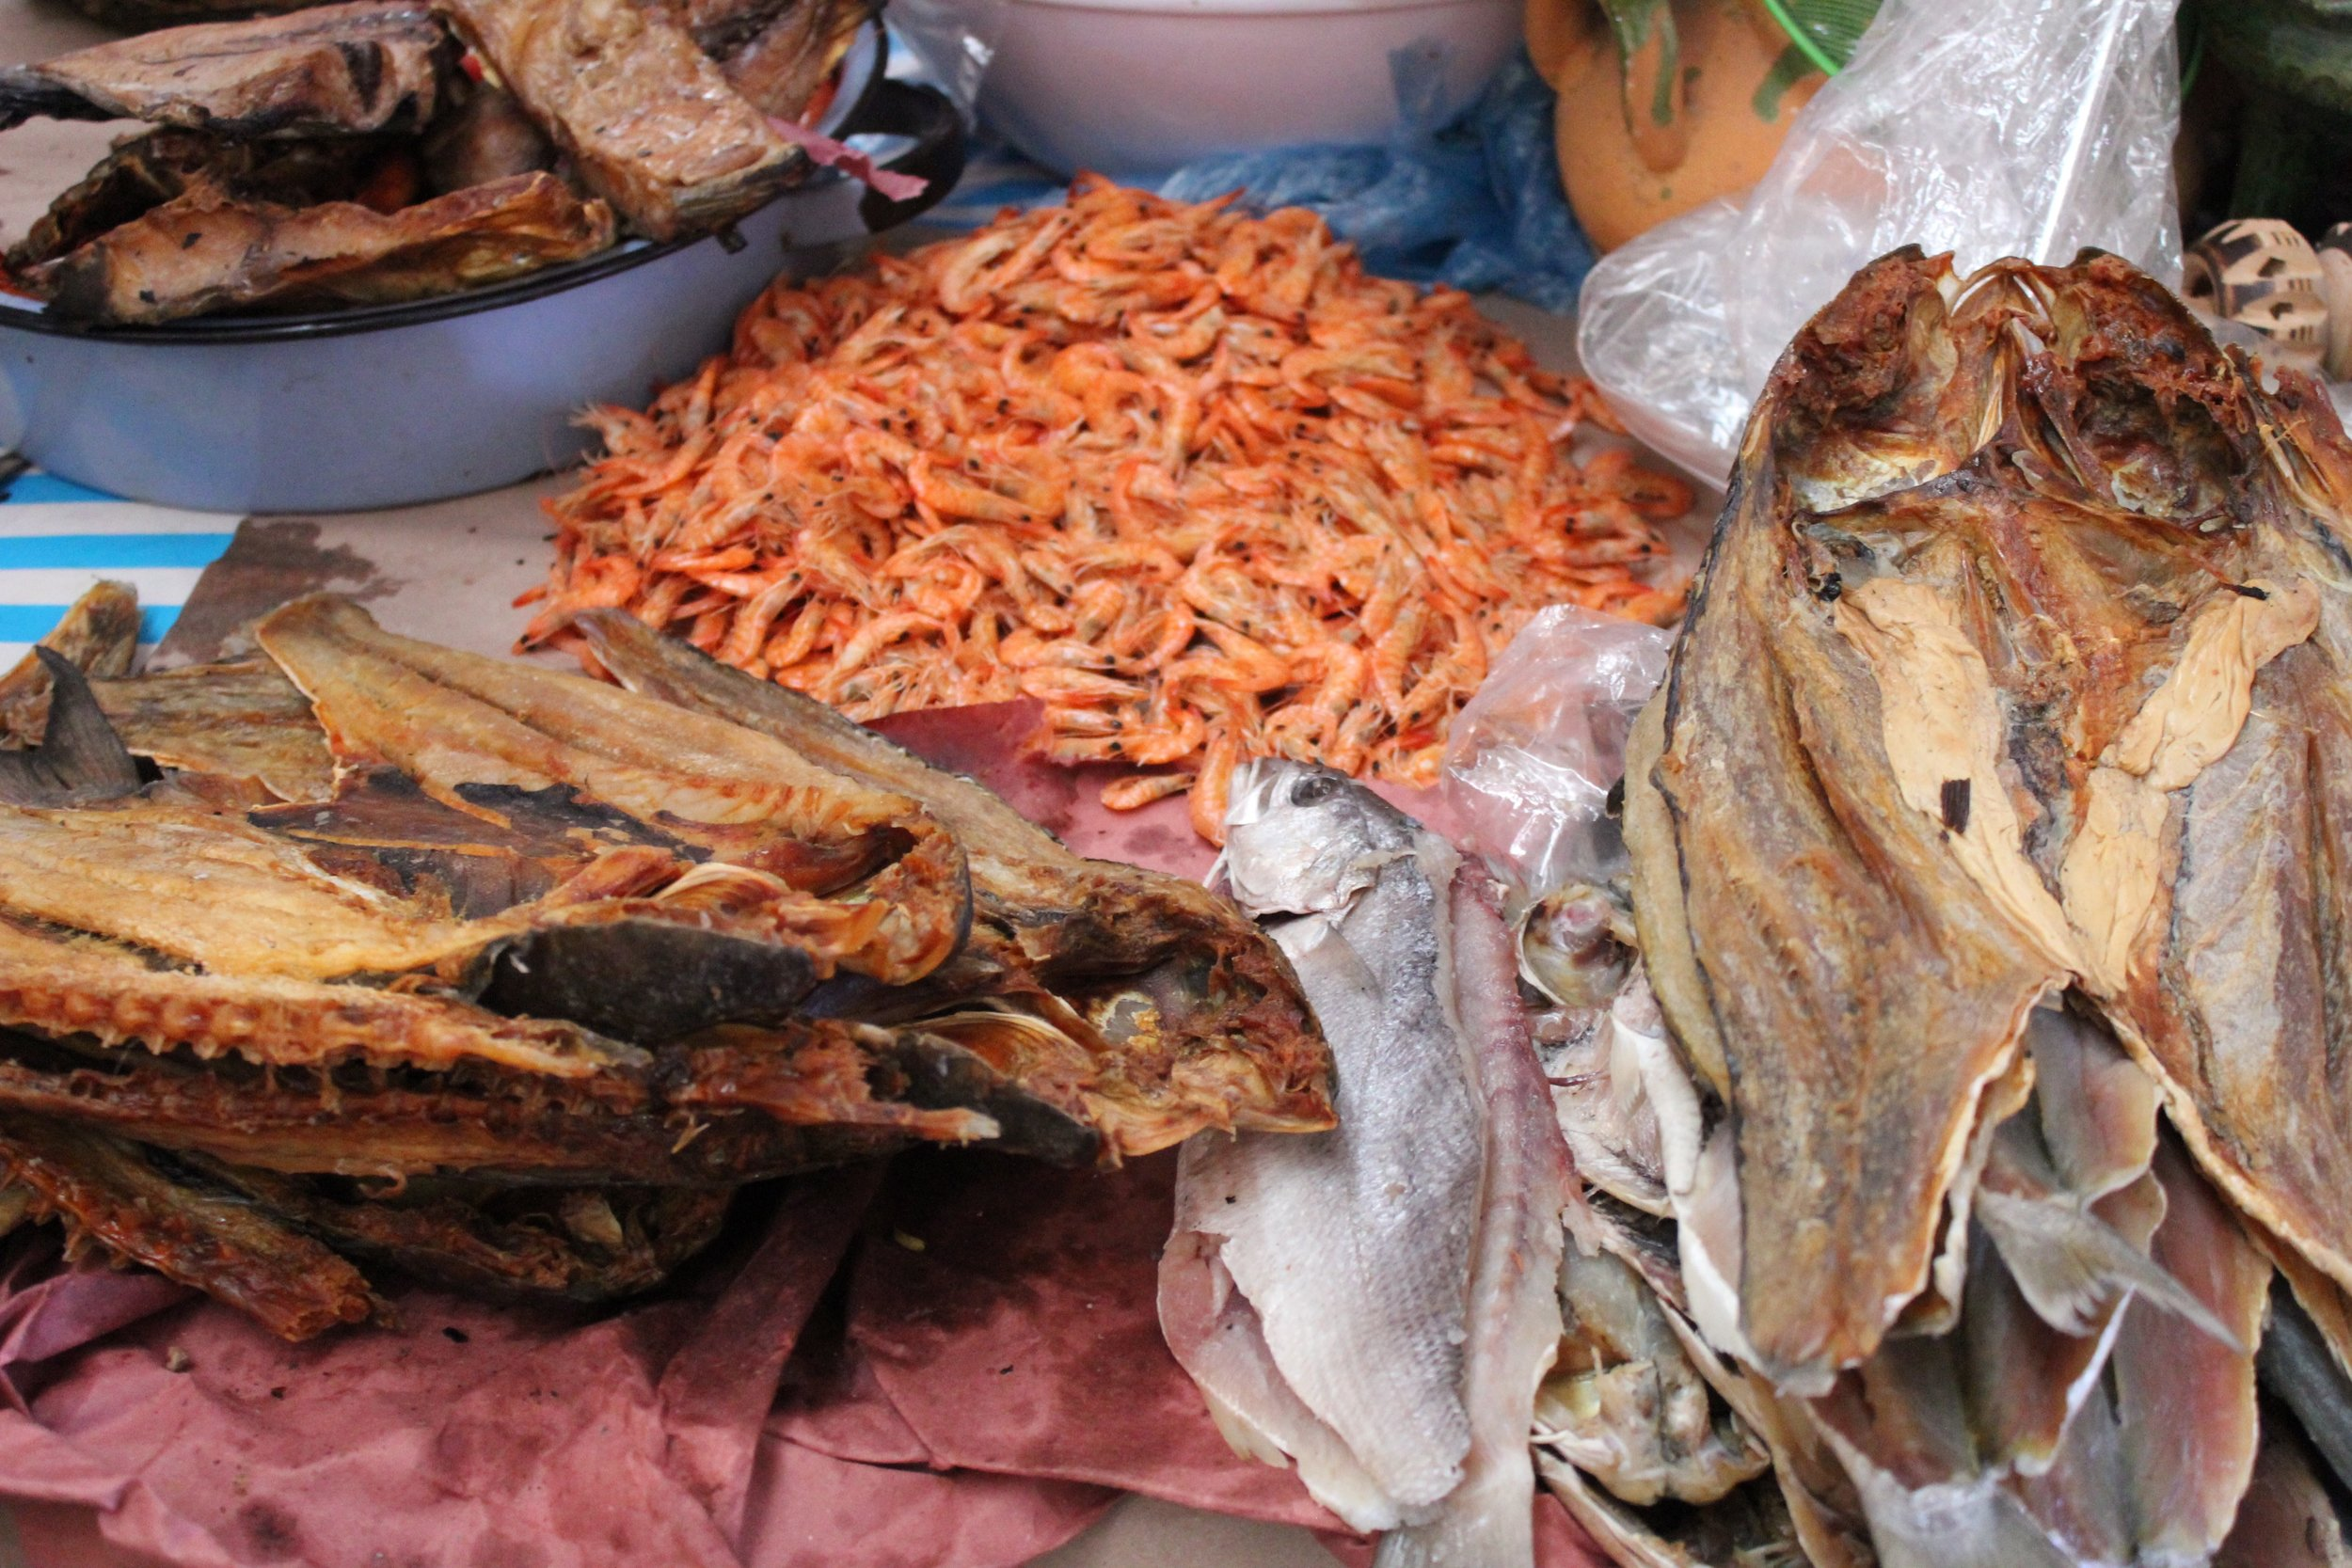 We attended the market on a Friday, which we were told is the shopping day for dried fish.